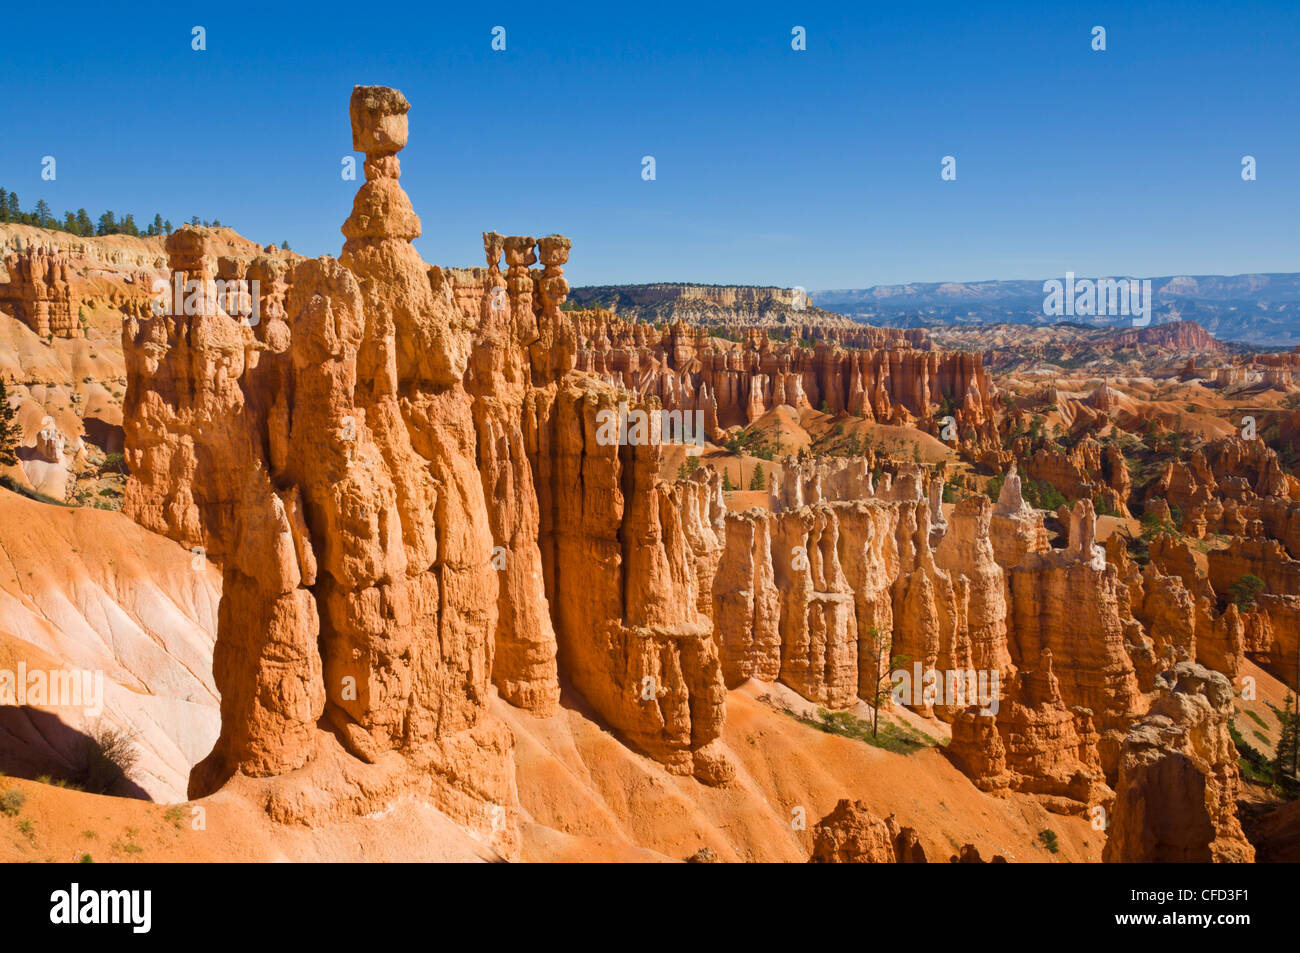 Der Hammer des Thor, Bryce-Canyon-Nationalpark, Utah, USA Stockbild